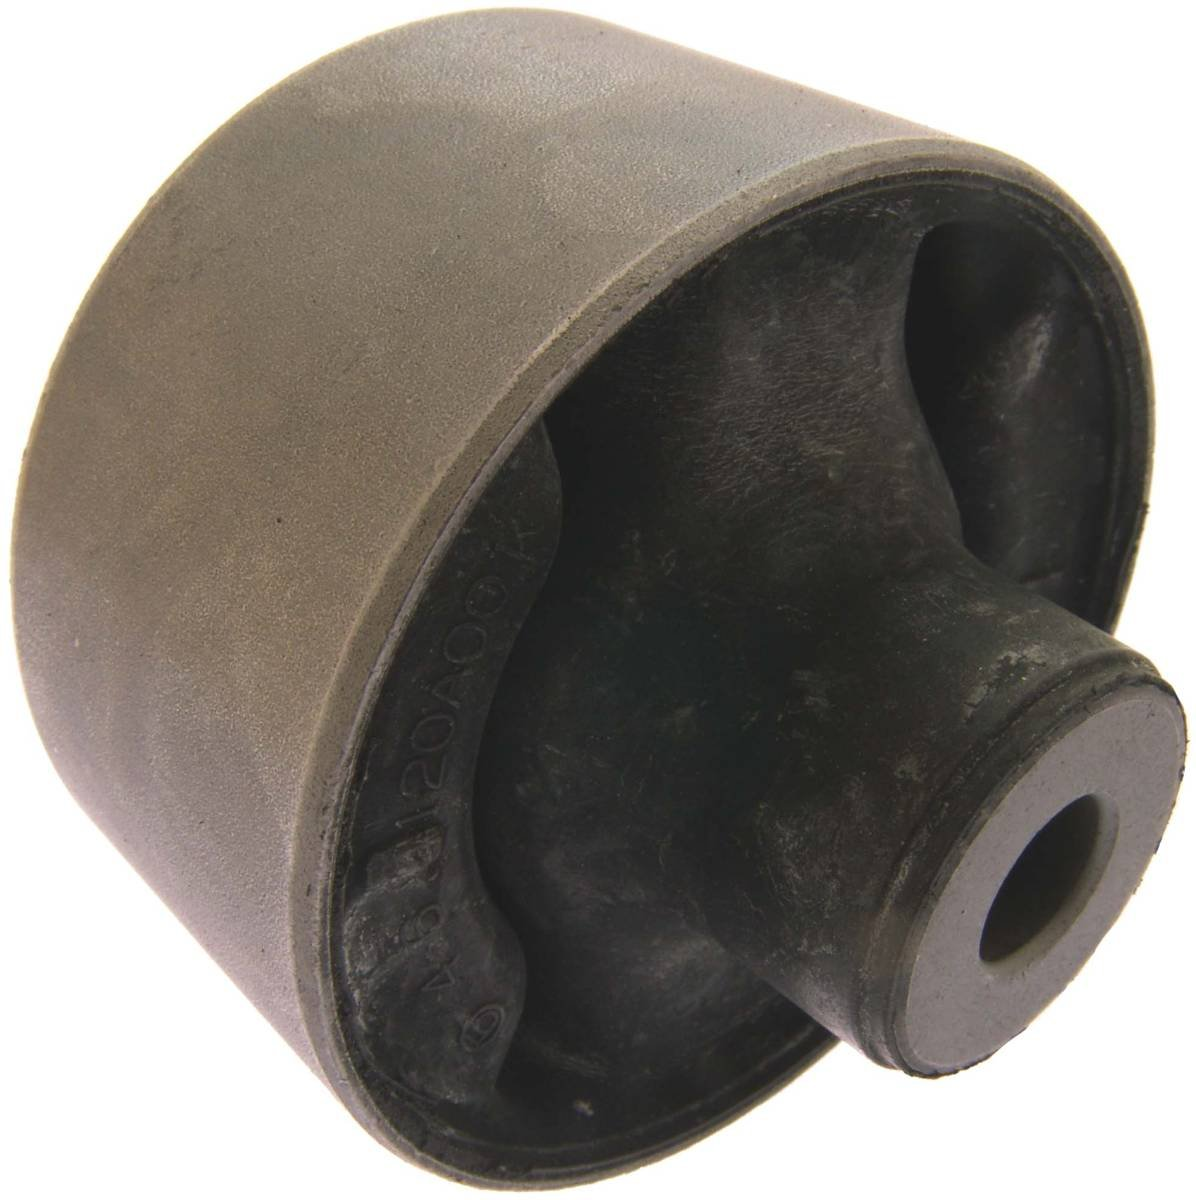 Febest - Mitsubishi Arm Bushing For Lateral Control Arm - Oem: 4120A001